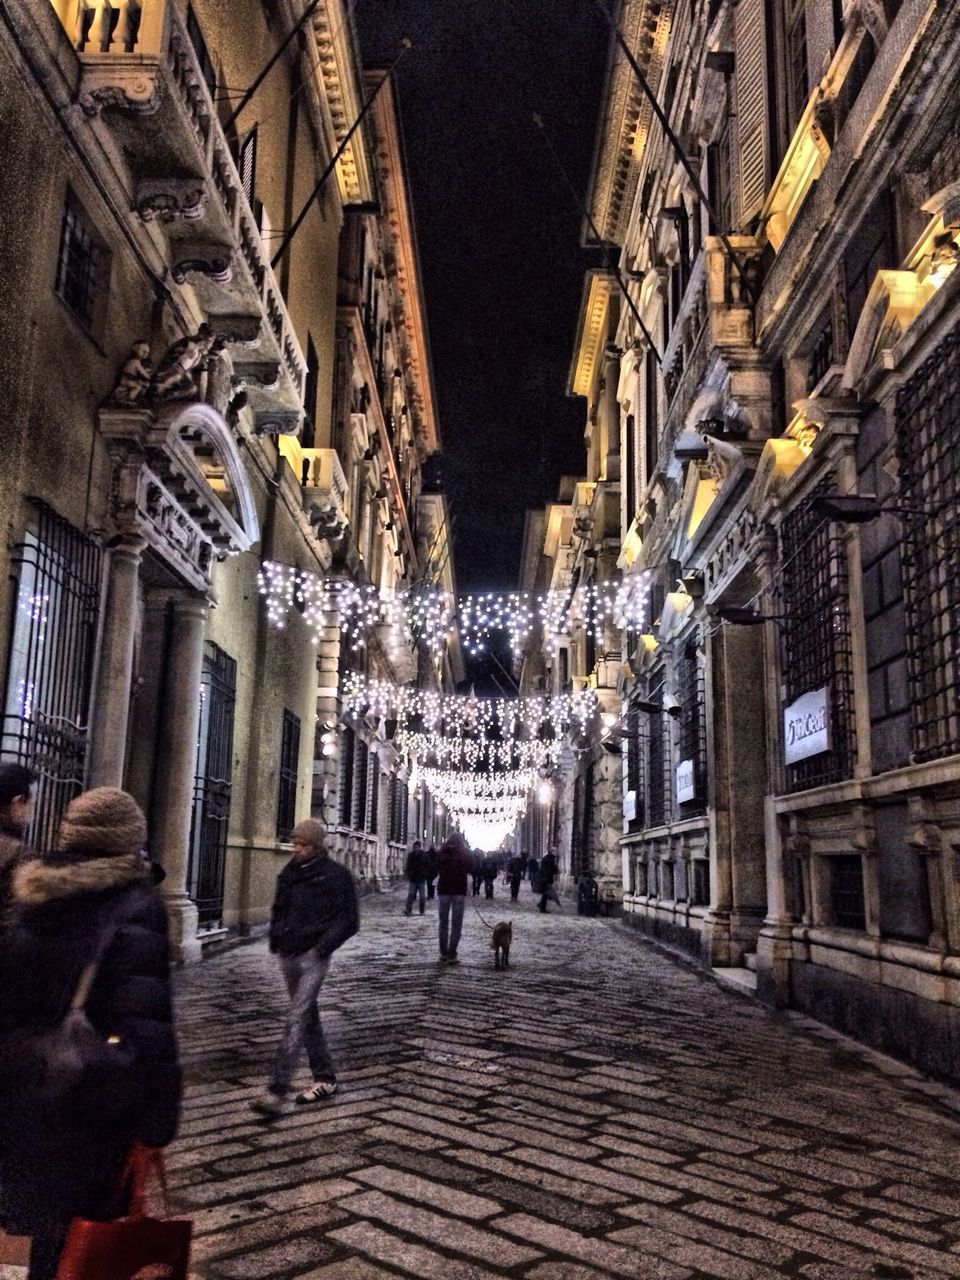 architecture, built structure, walking, building exterior, real people, illuminated, night, men, lifestyles, city, outdoors, people